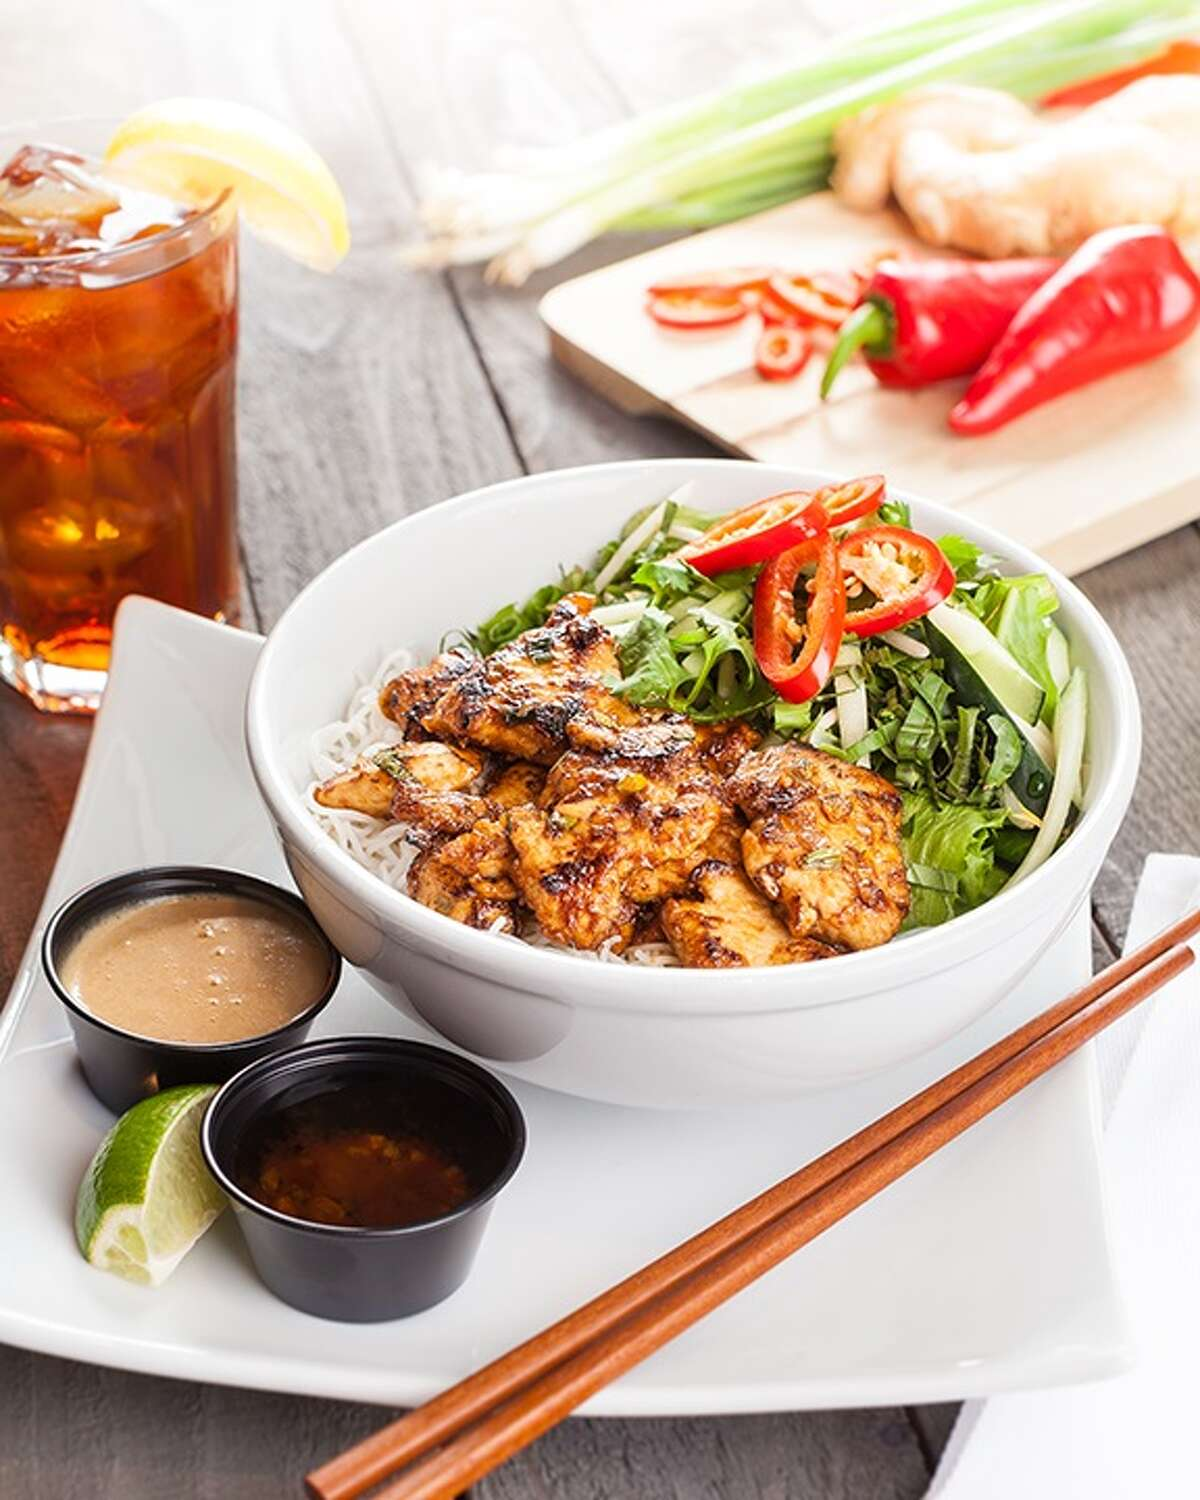 Mama Fu's Asian House opened it second Houston location on Dec. 7 at 12341 FM 1960 Rd W. Shown: Vietnamese vermicelli (thin rice noodles and fresh greens with wok-seared chicken).